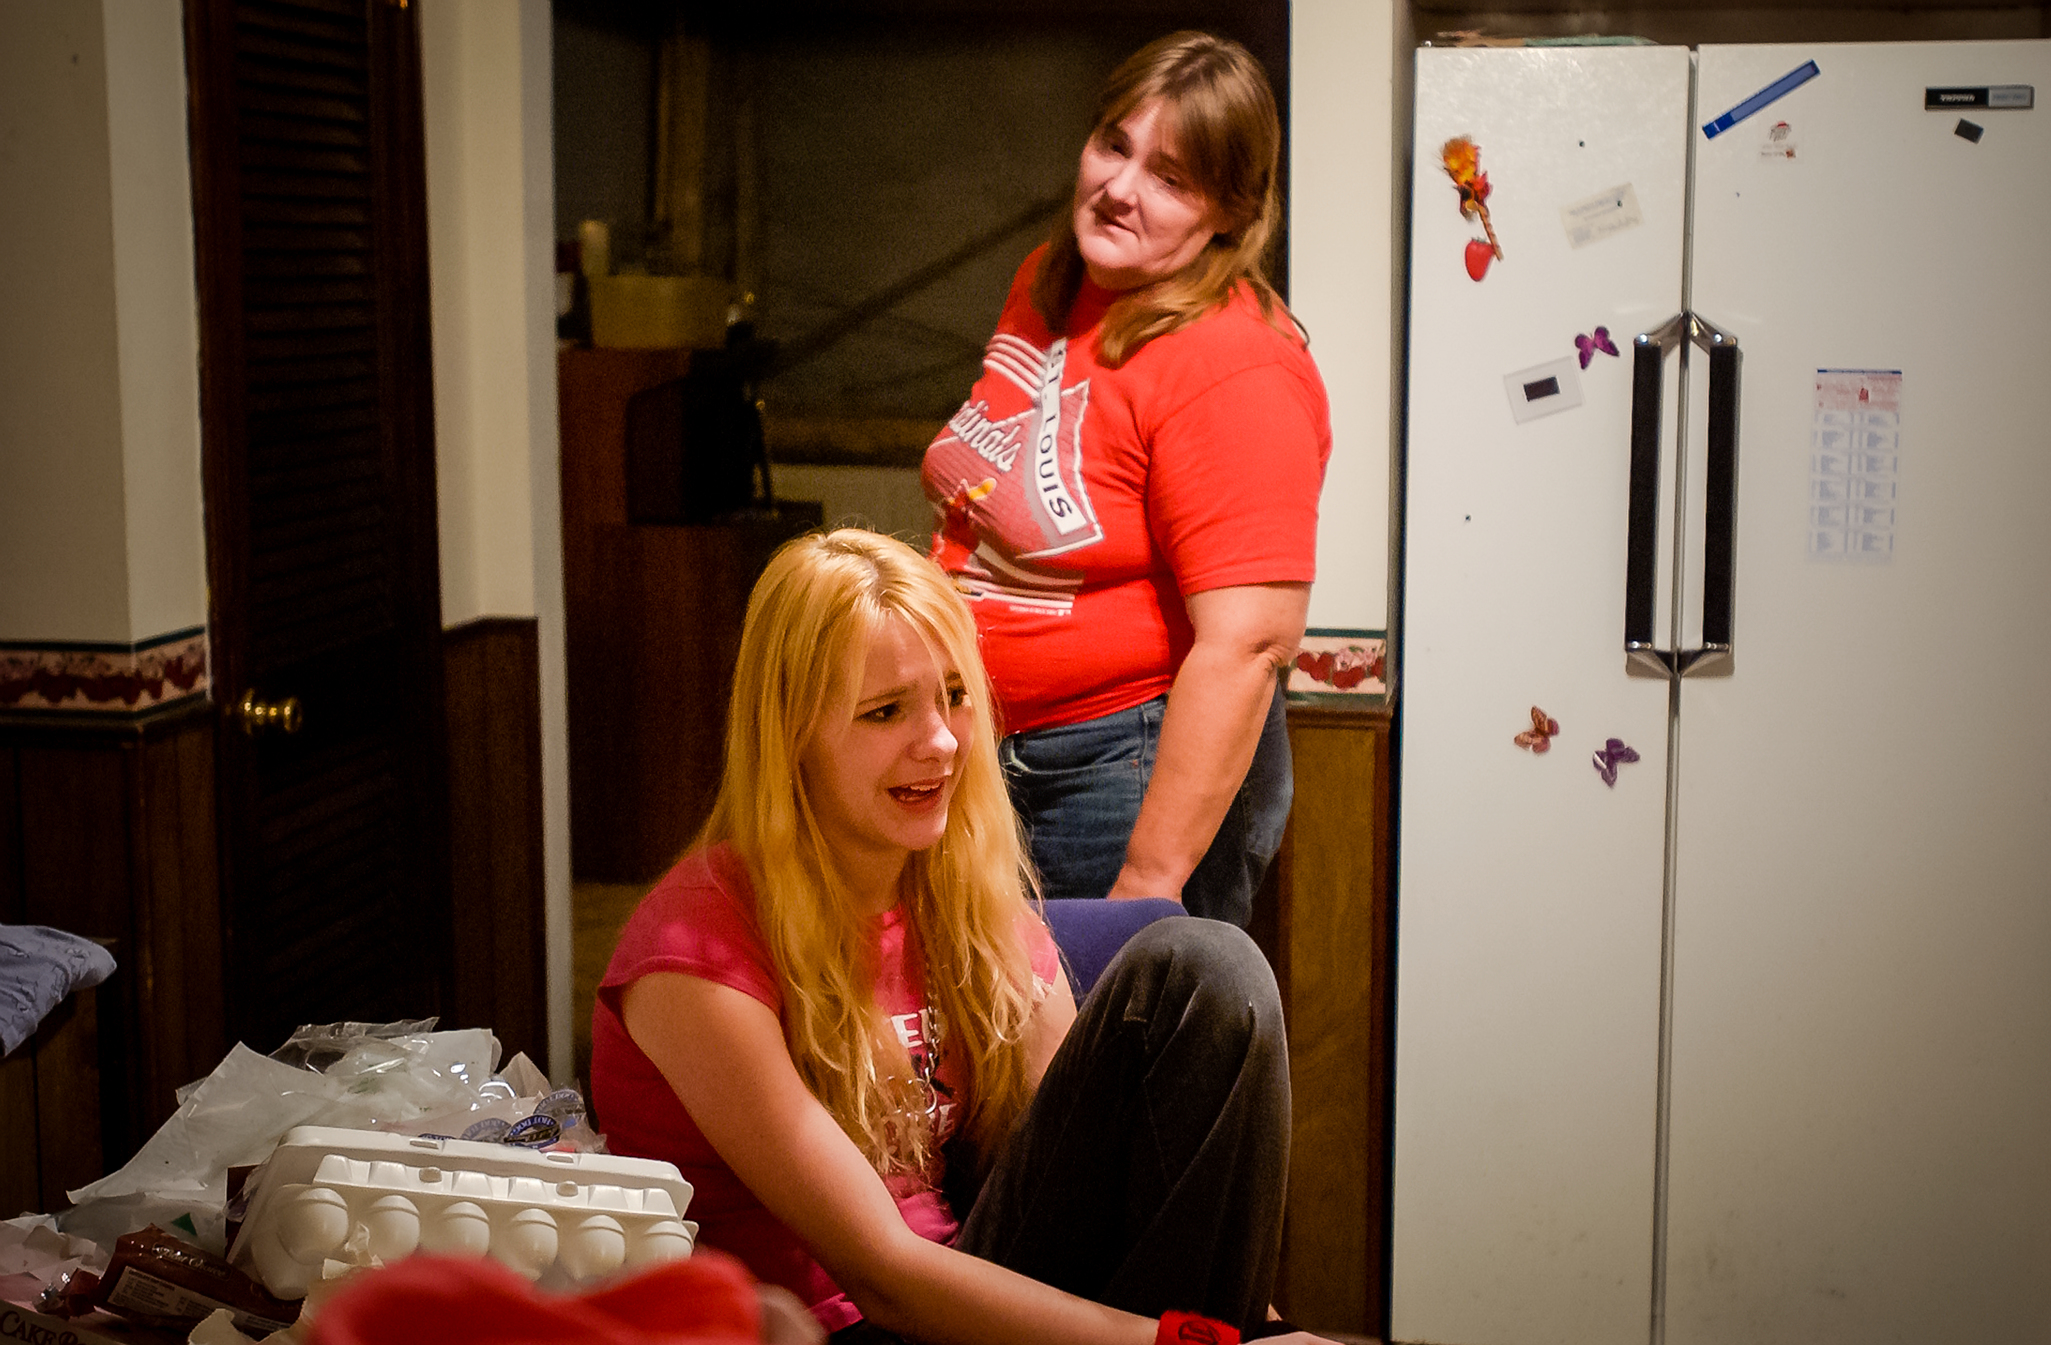 """Spirit and her mother, Cindy, argue about a trip to the store before she has to leave for the night-shift at GEX Automotive making sealant for car windows. Cindy had her first child when she was 16 and was hoping to have a girl. However, she did not have Spirit until 14 years later. """"I was a partier when I was younger, by the time I had her I grew up,"""" Cindy says. Spirit has never met her father."""